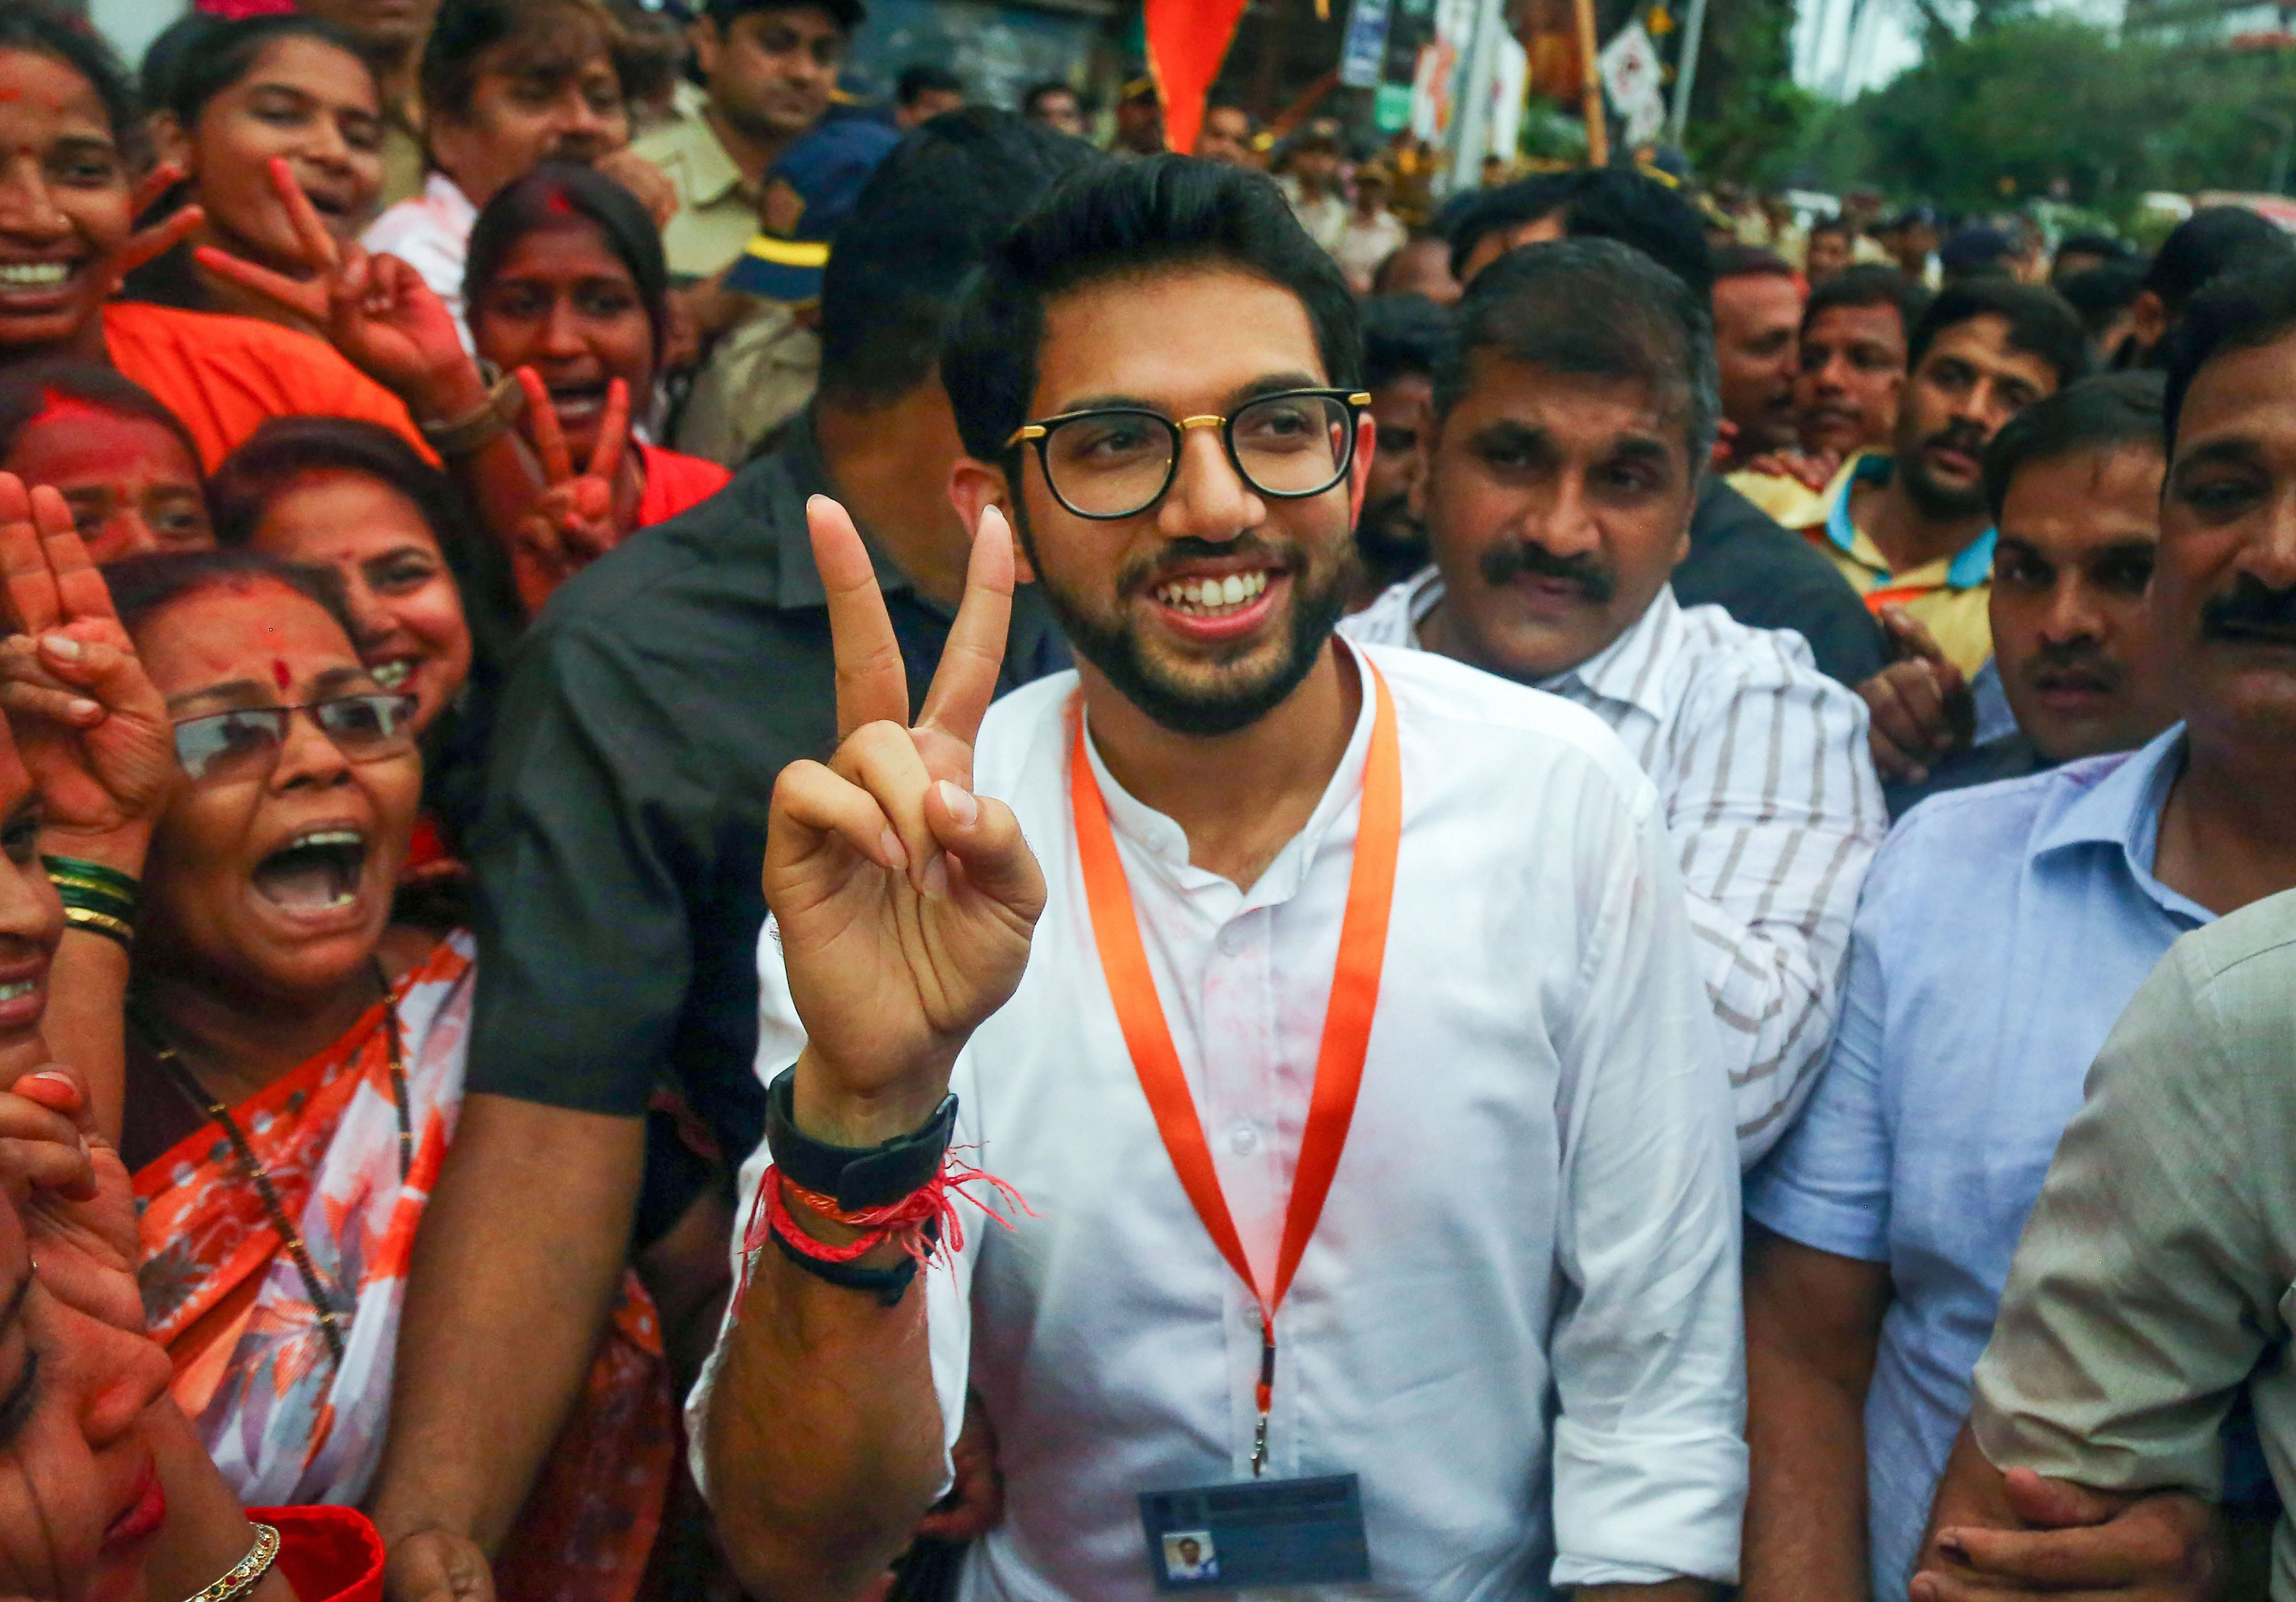 Shiv Sena's Aaditya Thackeray. His party claimed that the BJP had promised a 50-50 sharing of the chief minister's chair, while the BJP said that it did not.